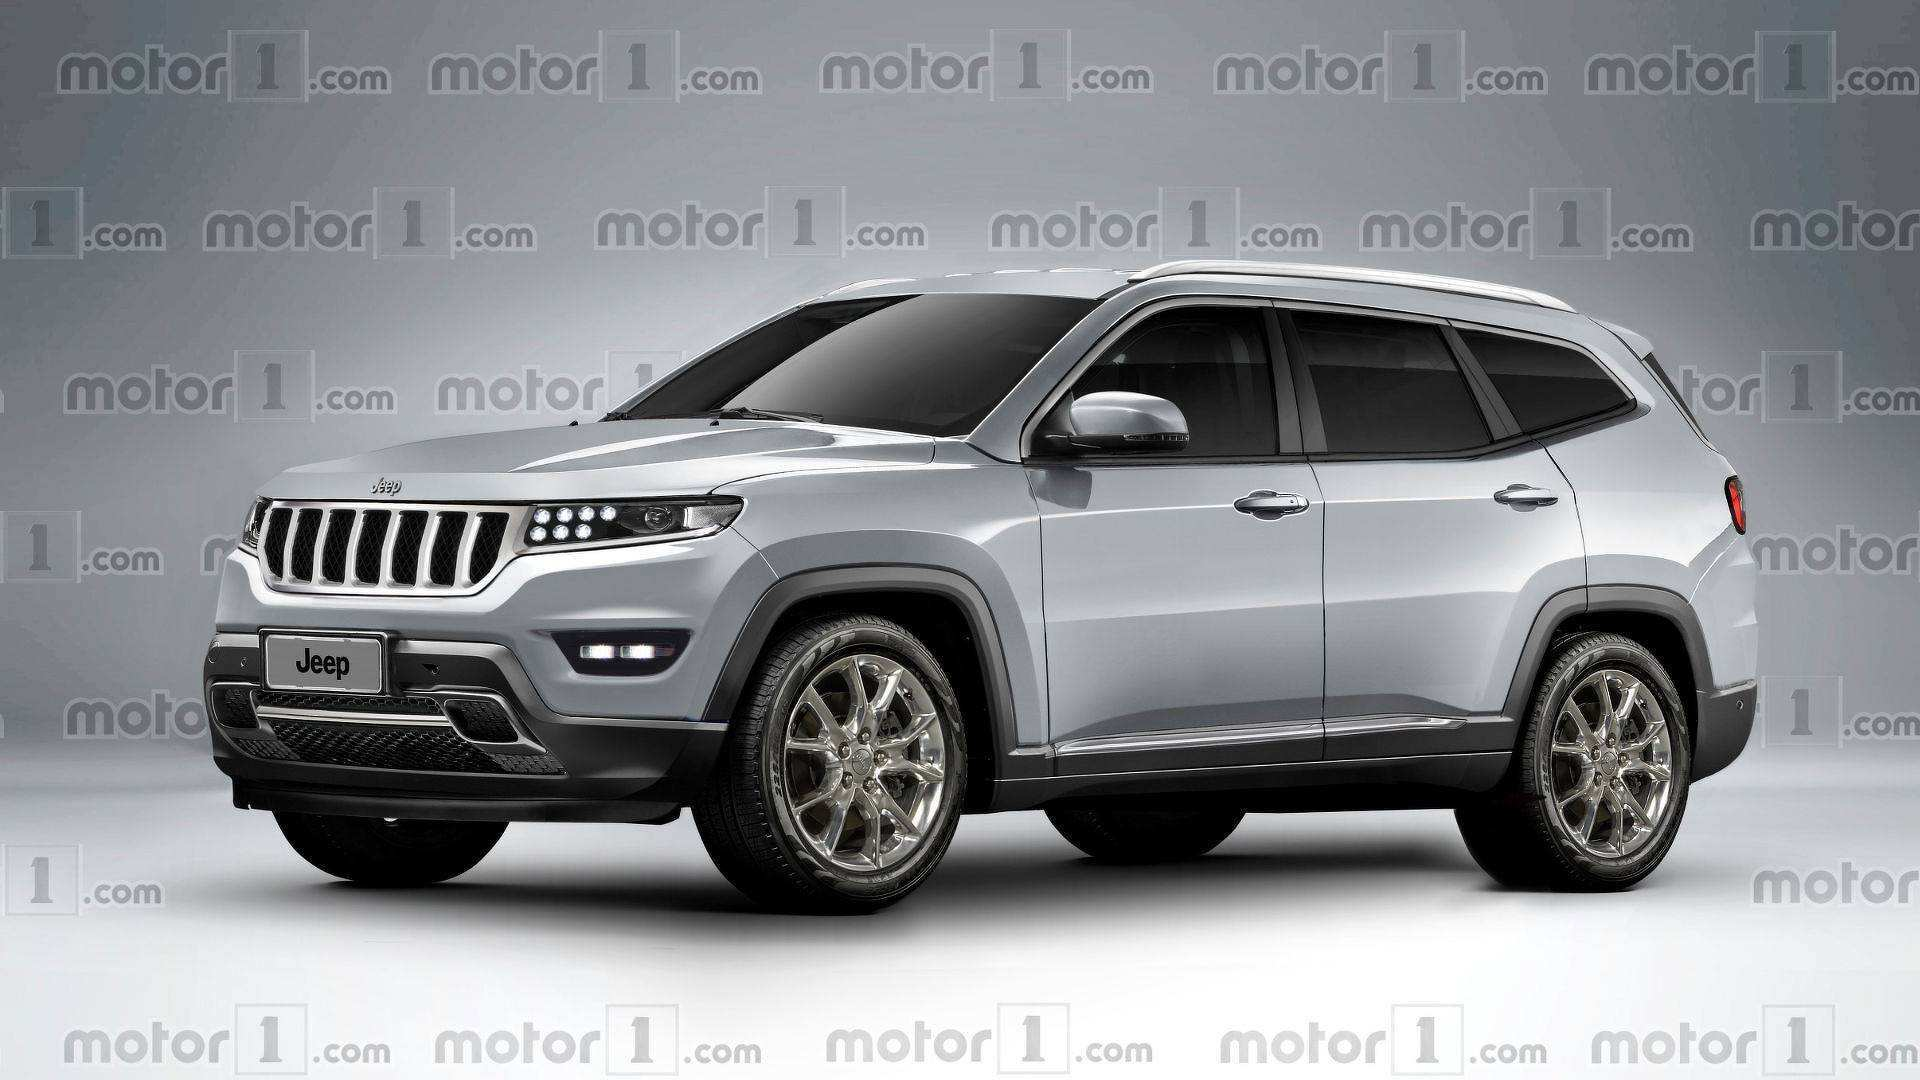 76 The Jeep New Suv 2020 Model